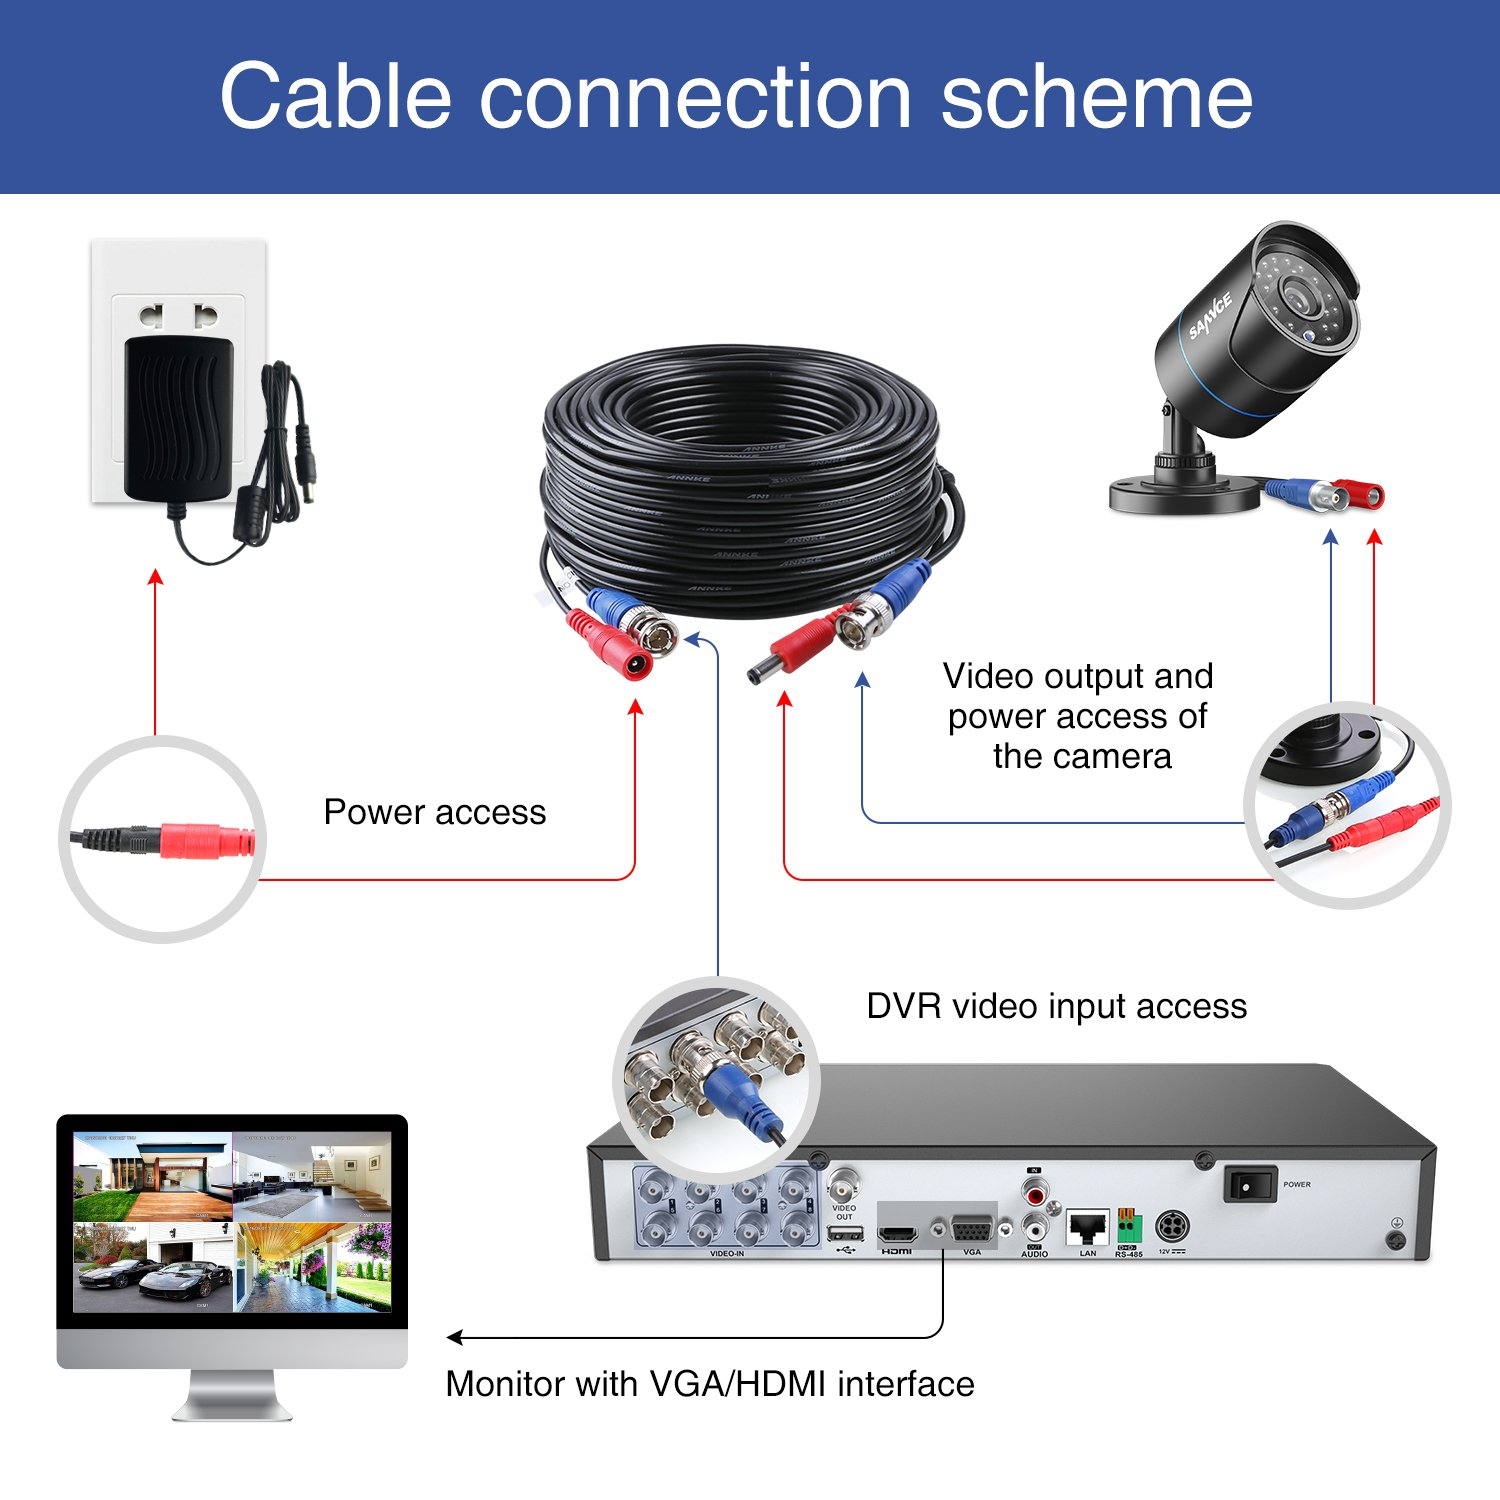 Amazon.com : ANNKE 1 100FT Video Power Cable, CCTV Security Camera on dvi-d pinout diagram, vga to bnc adapter diagram, vga to s-video diagram, vga cable parts diagram, vga cable cover, vga wire diagram and colors, vga pinout diagram, vga to component diagram, vga to composite wiring-diagram, vga cables for desktop, vga pin diagram, vga connector diagram, vga cable suppliers, vga cable power supply, vga cable adapter, vga cable sizes, dvi to vga cable diagram, vga cable pinout, vga cable connector, vga cable to tv,